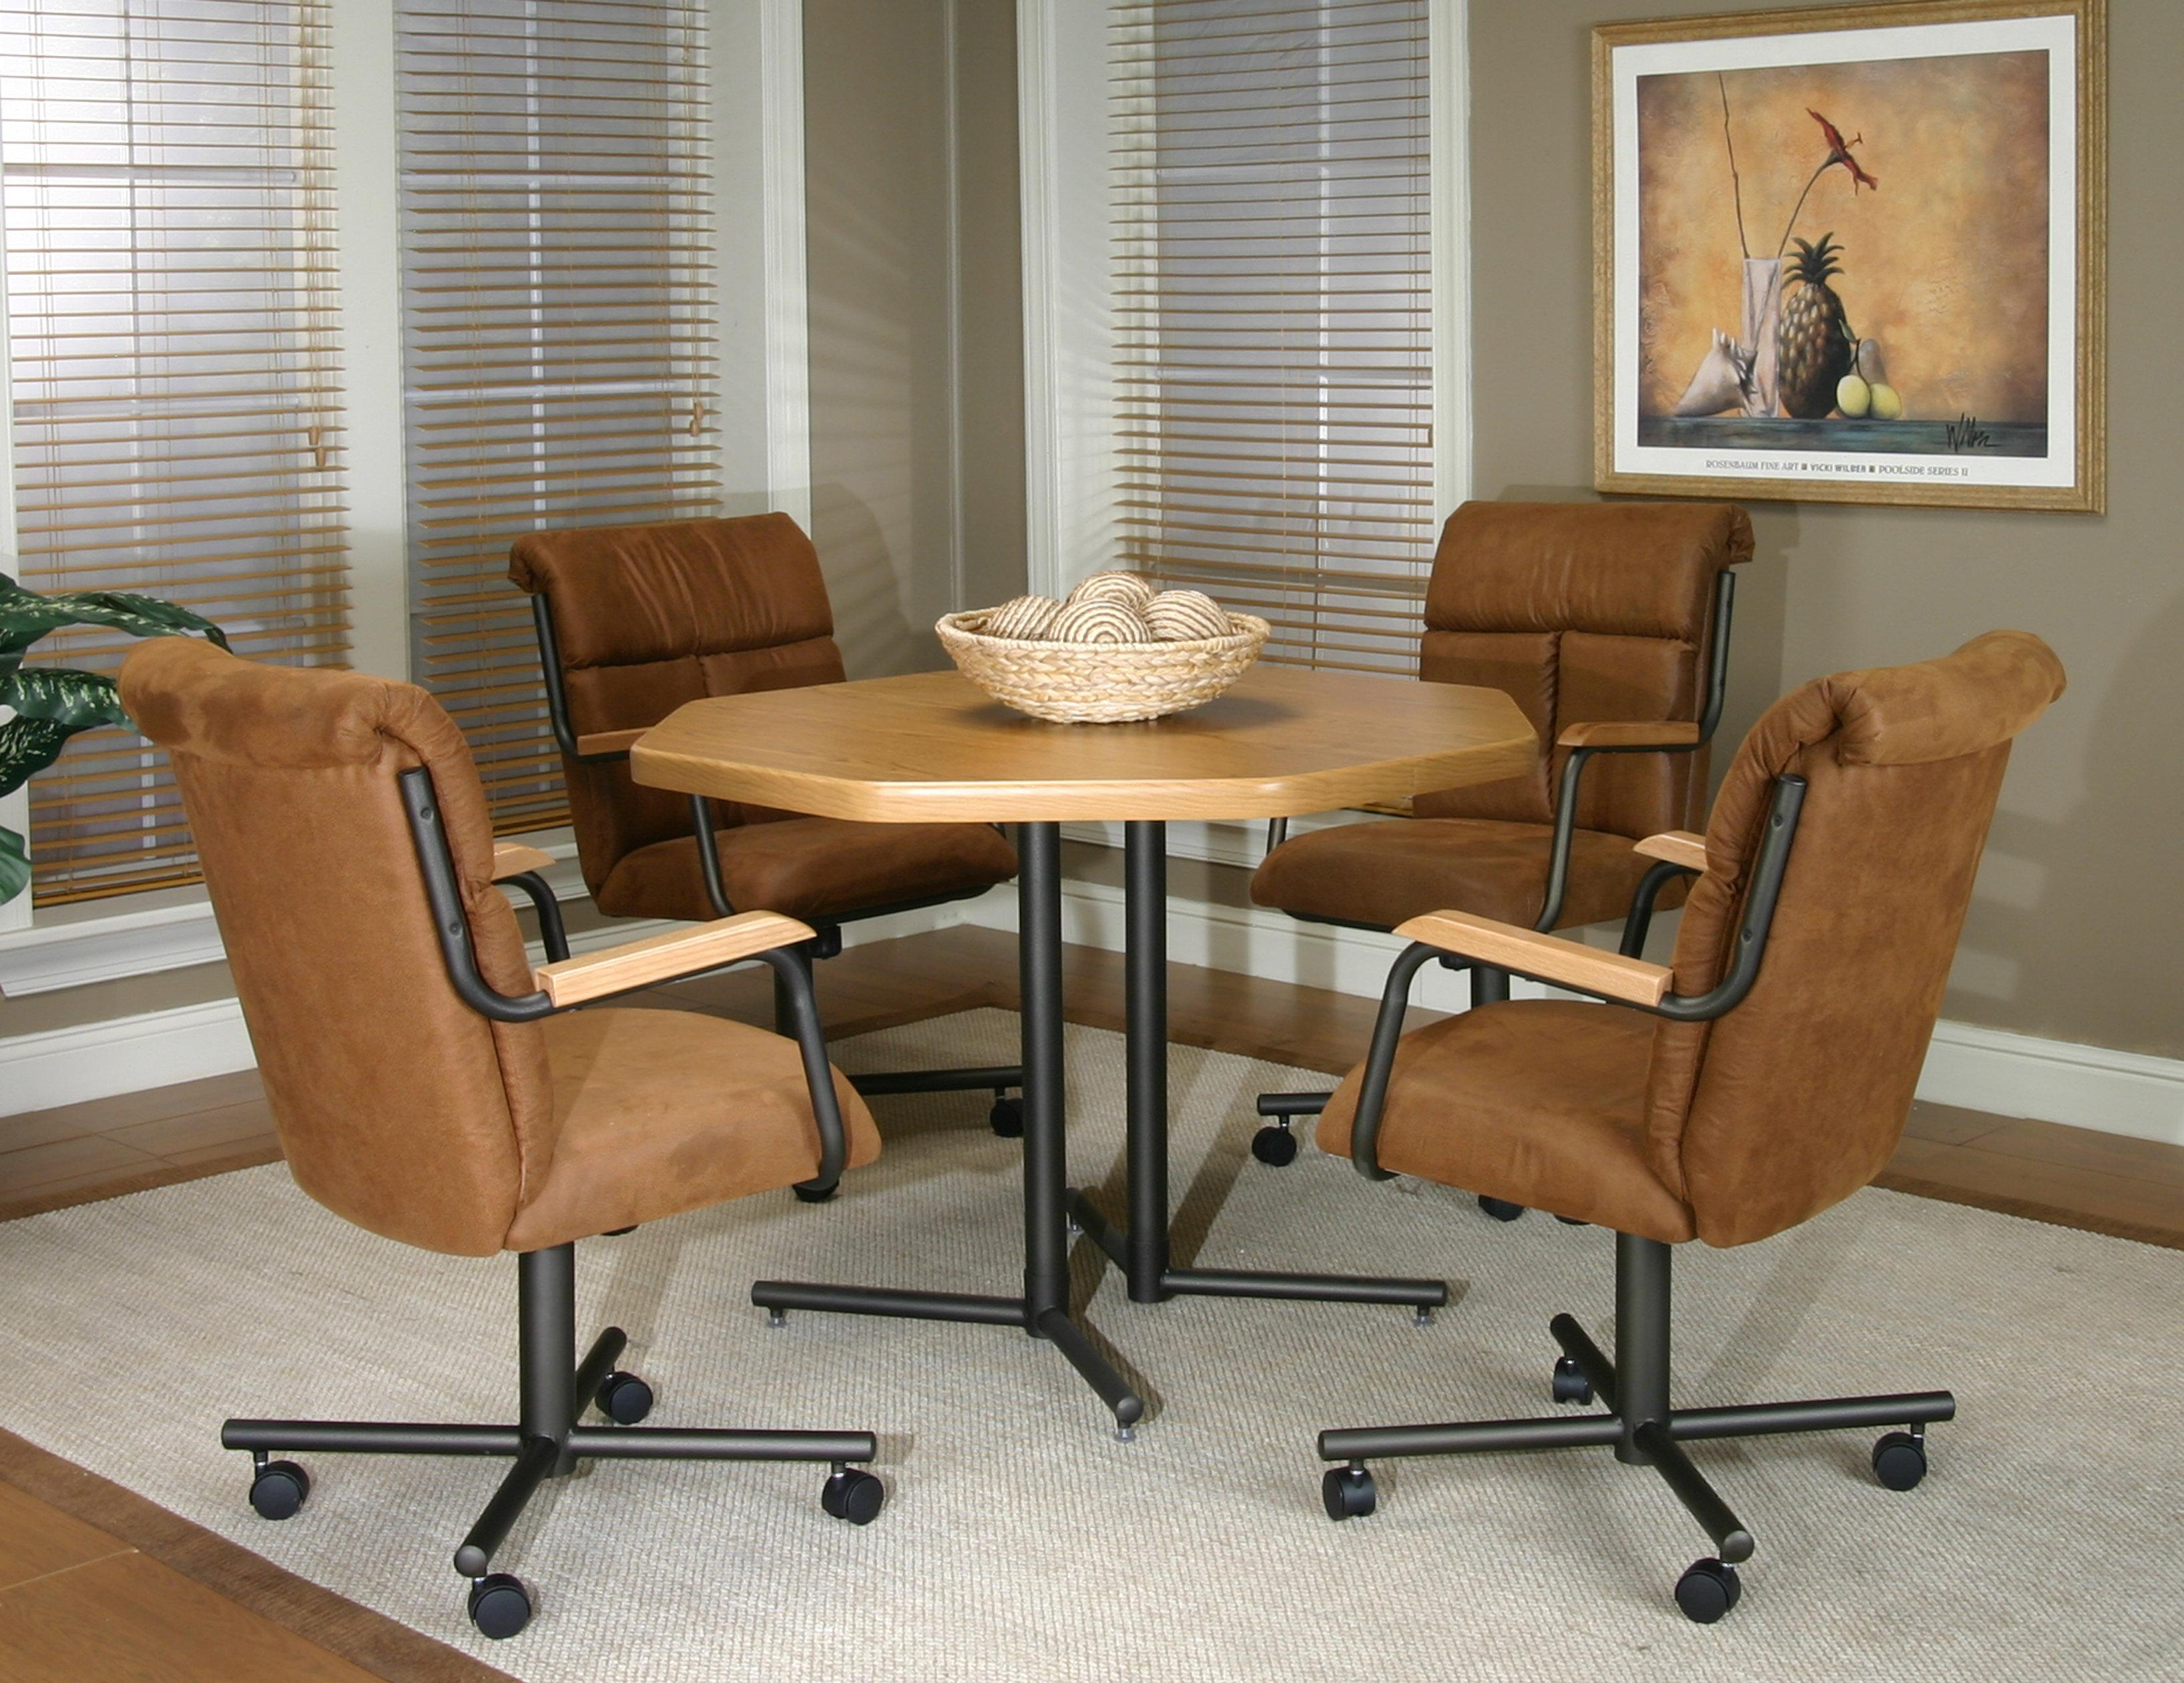 kitchen chairs with arms Cramco Inc Landon Dining Arm Chair With Casters Wayside Furniture Dining Chair with Casters